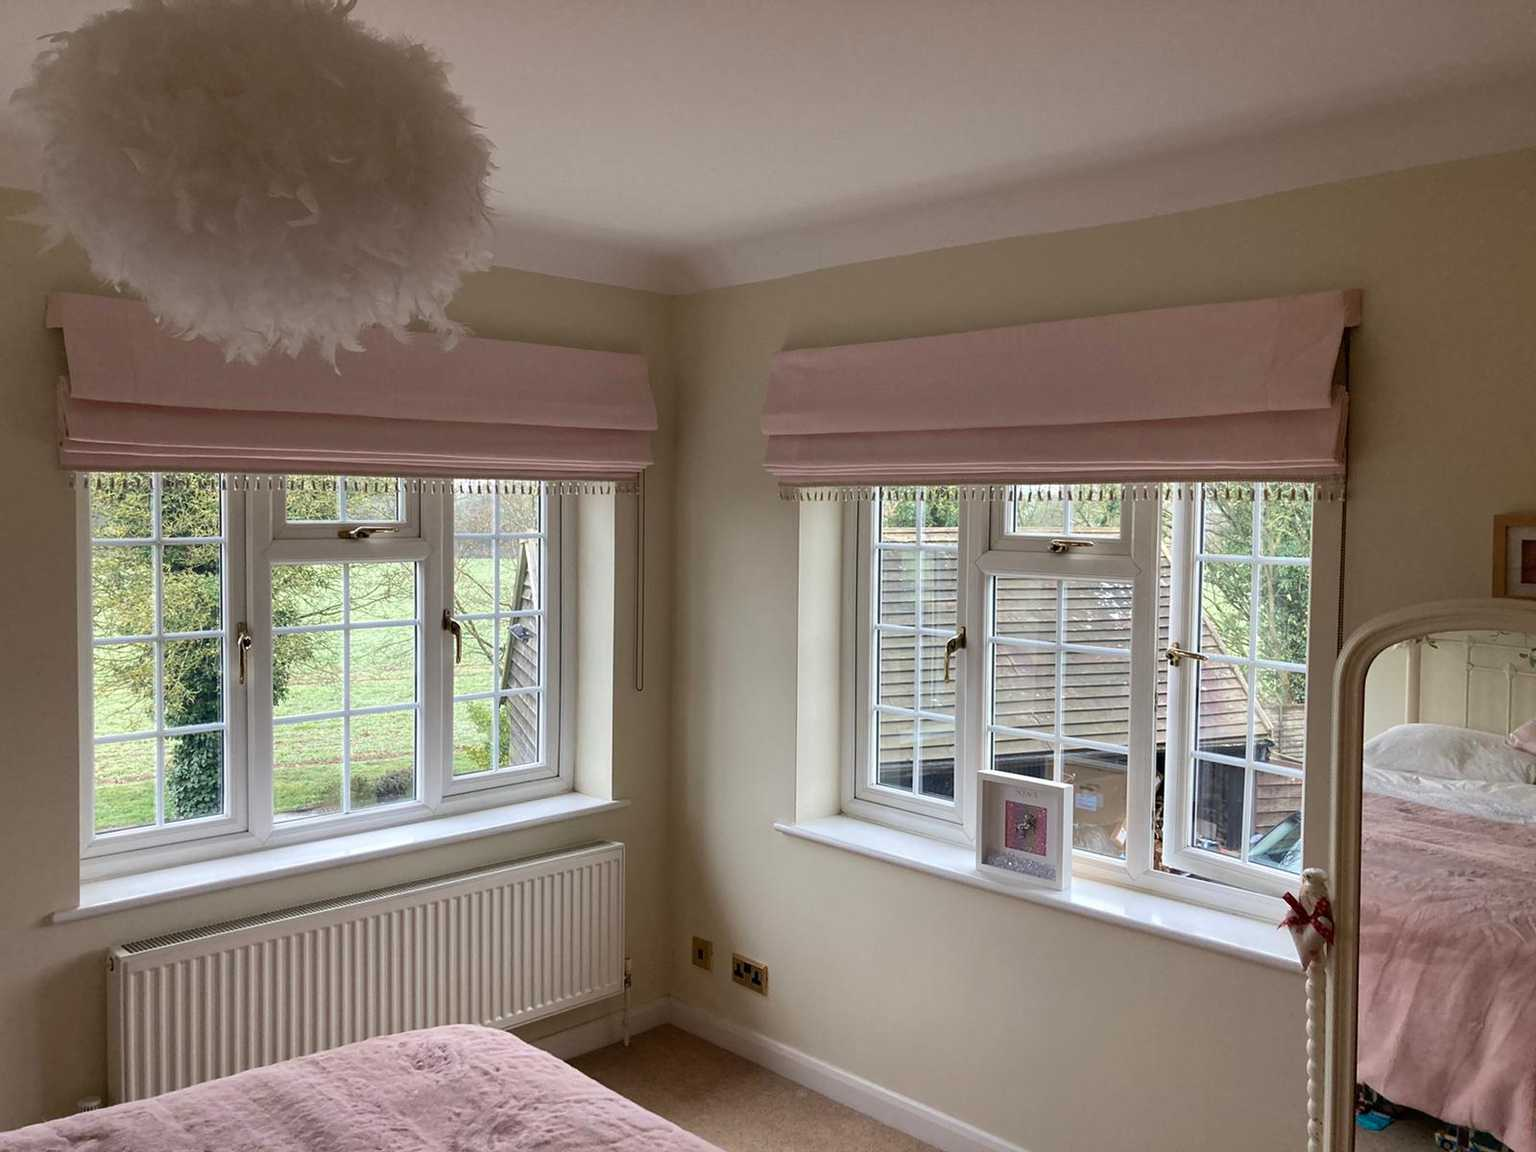 Little girls pale pink roman blinds with bobble trim